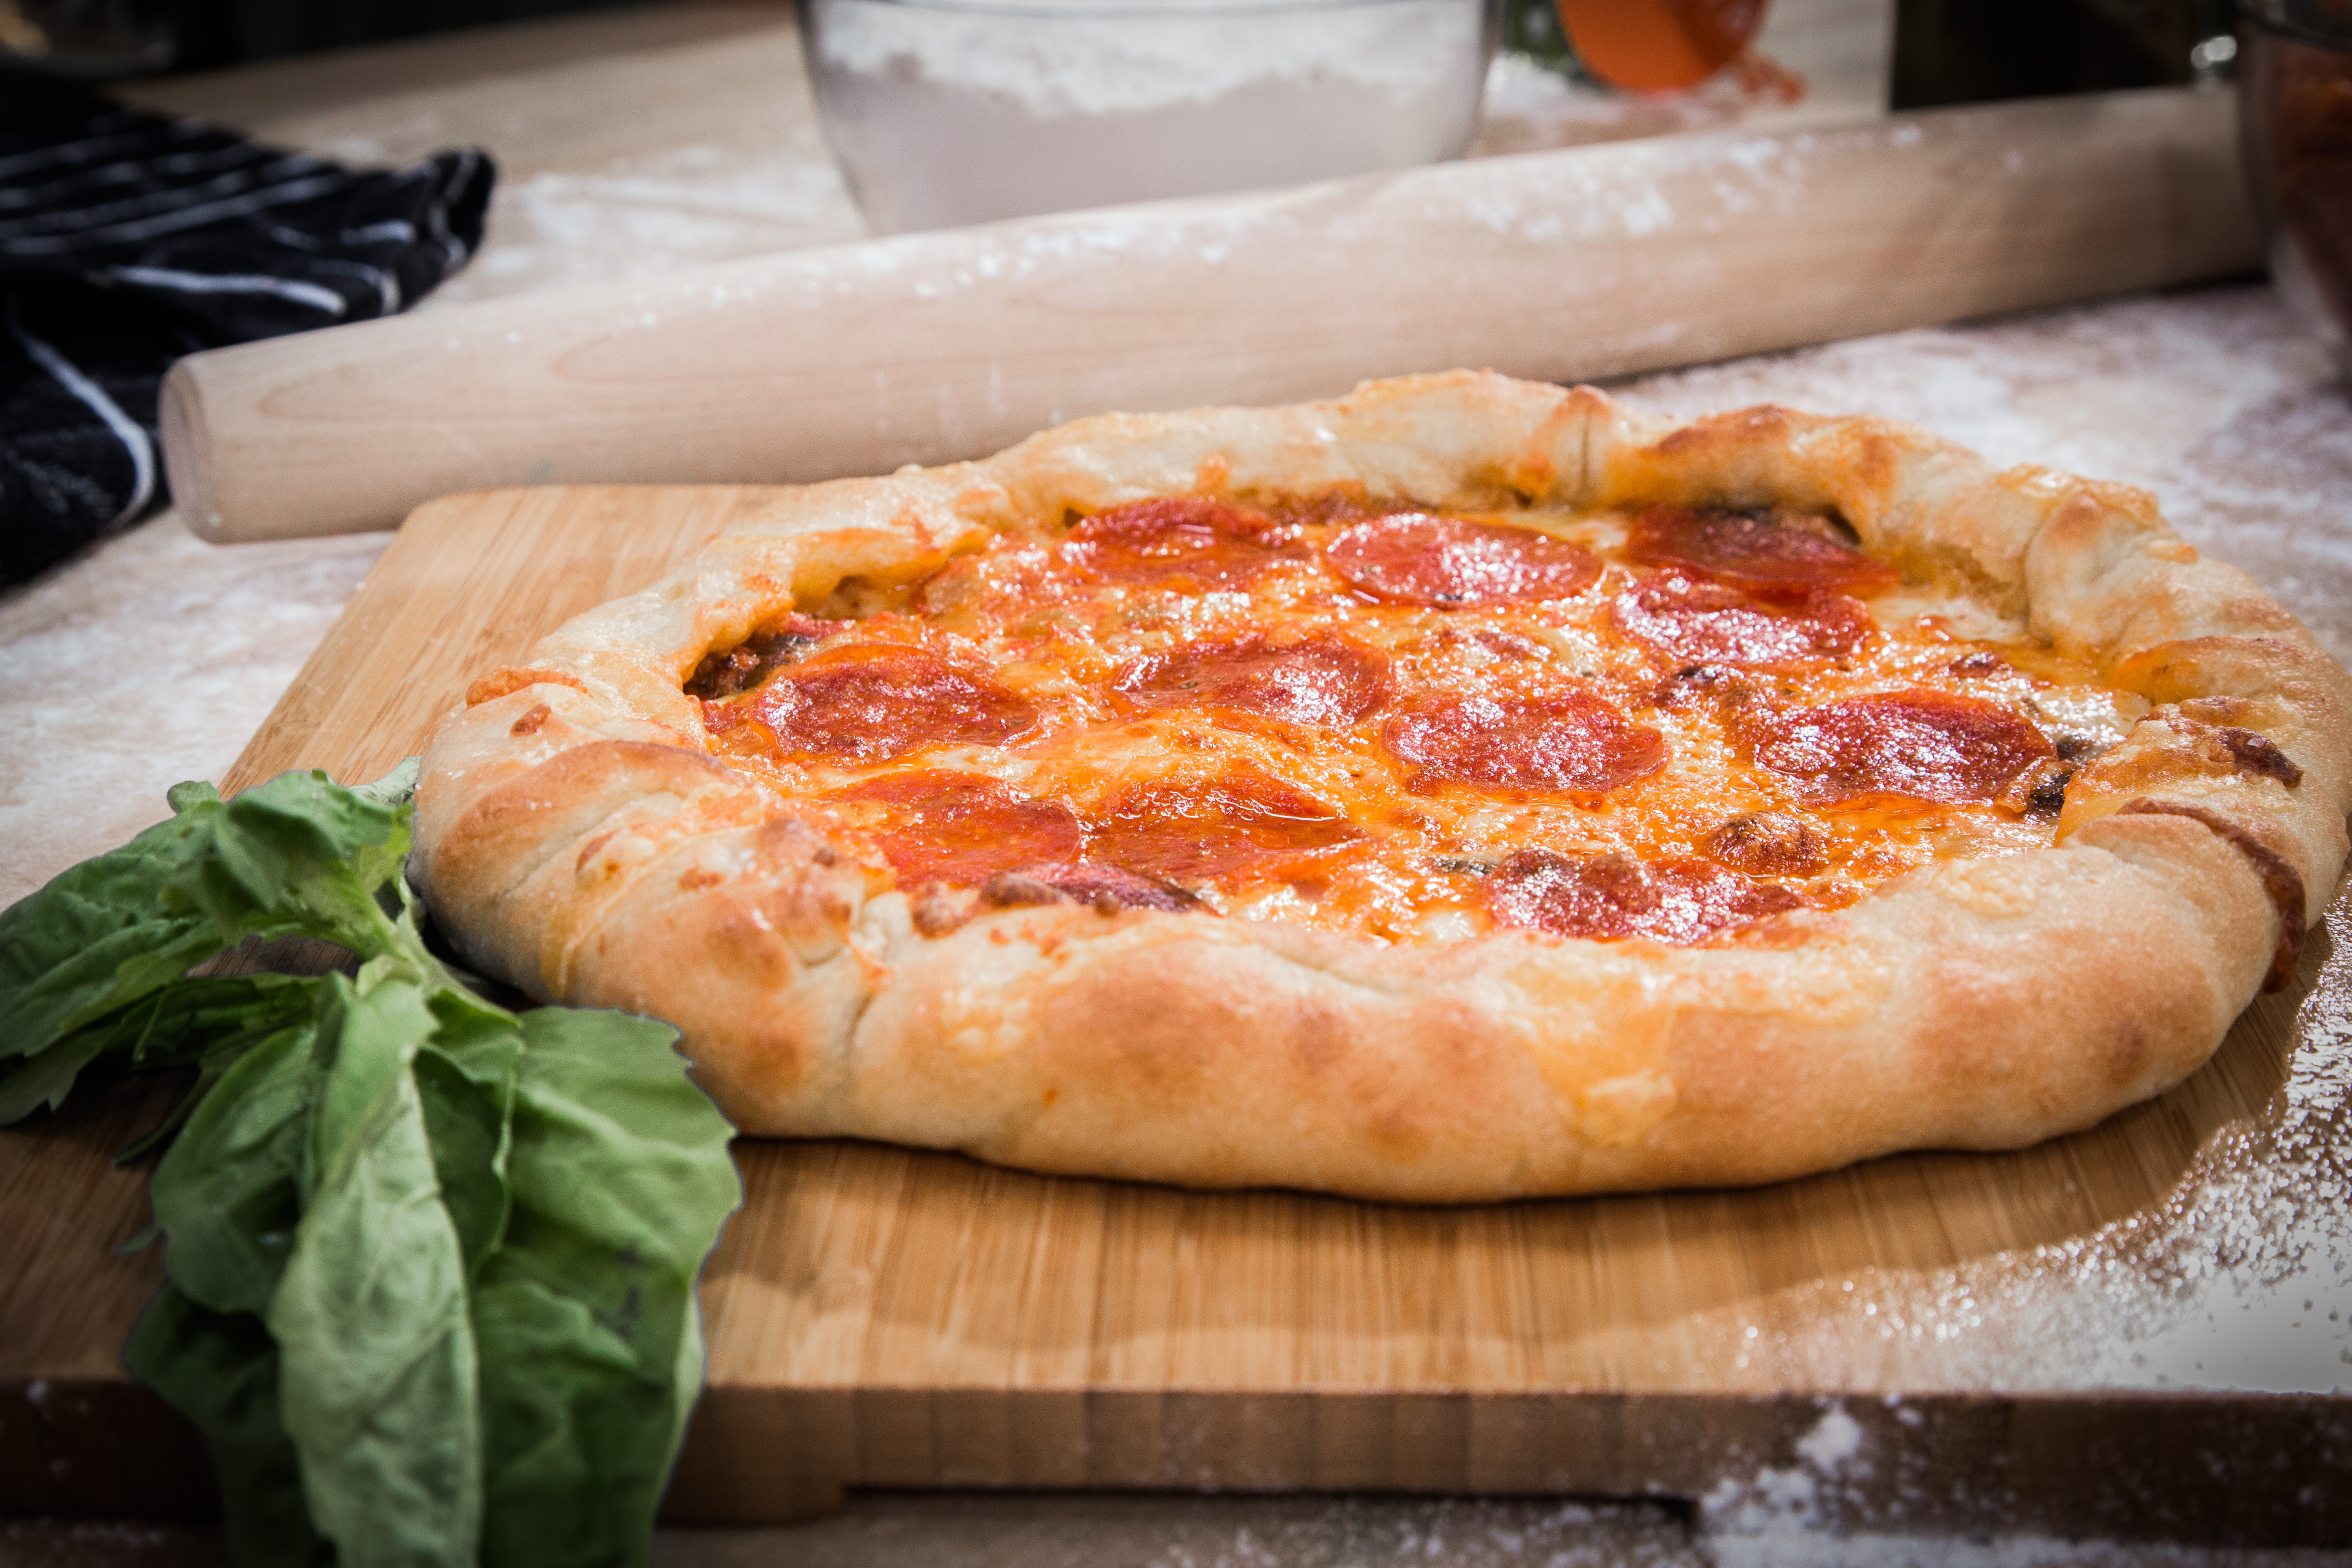 Cristinas quick and easy pizza dough recipe hallmark channel forumfinder Images